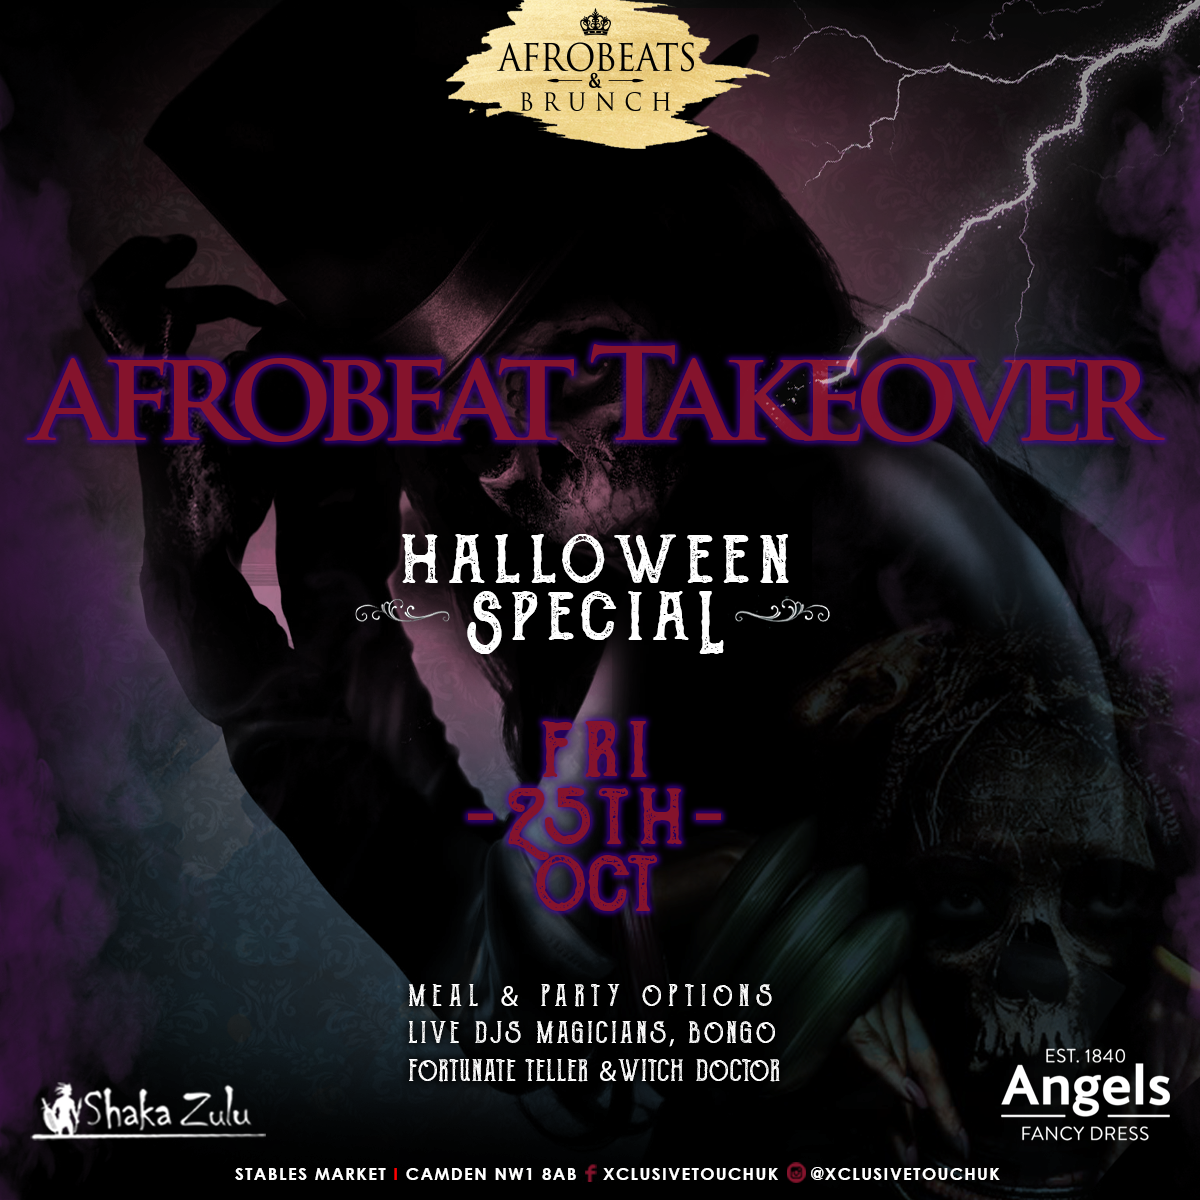 Afrobeats Takeover: Halloween Special